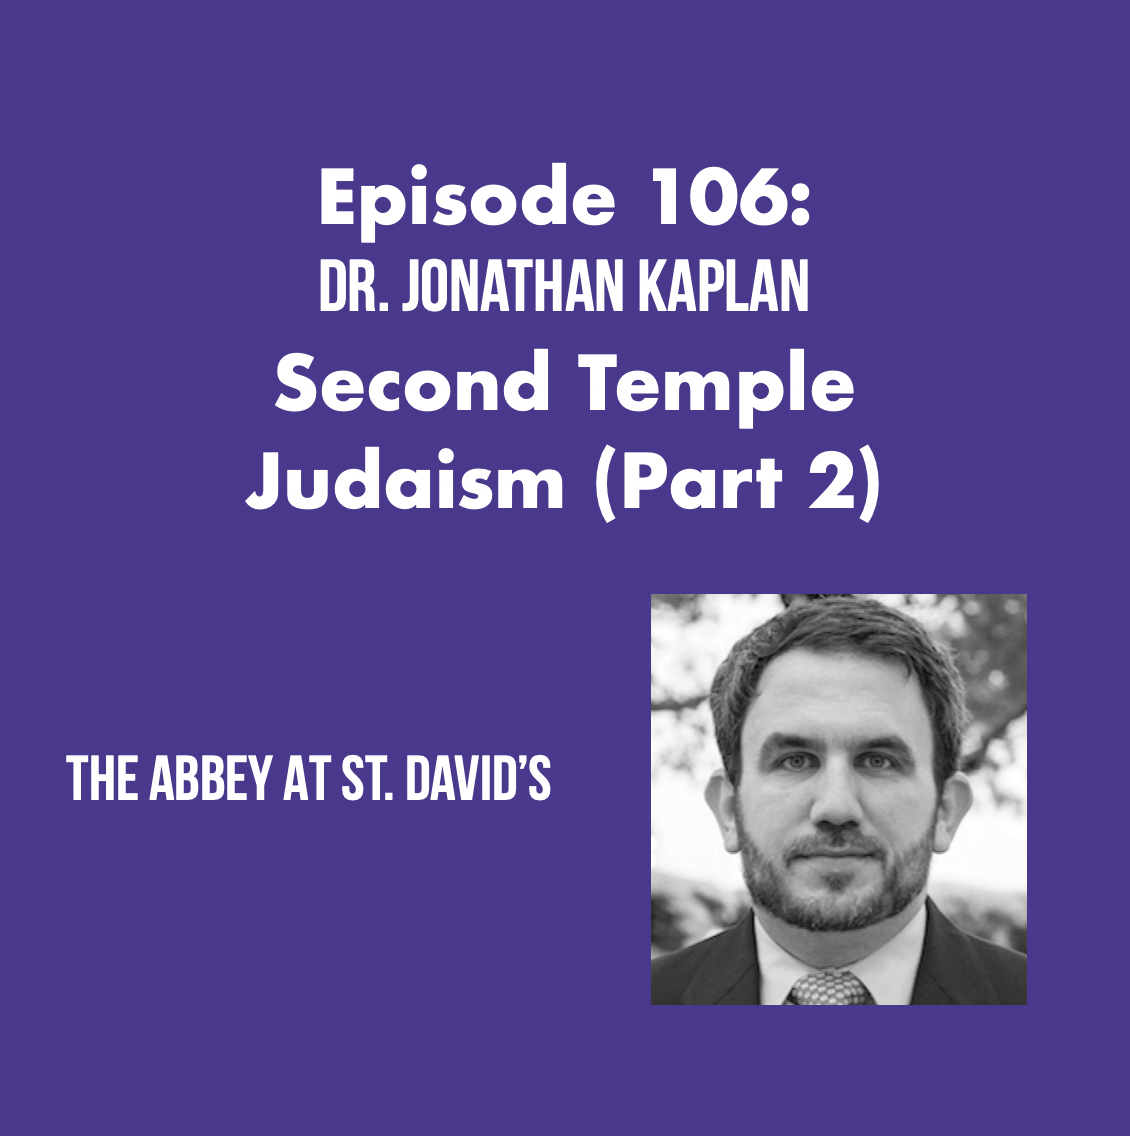 Episode 106: Second Temple Judaism (Part 2) with Dr. Jonathan Kaplan